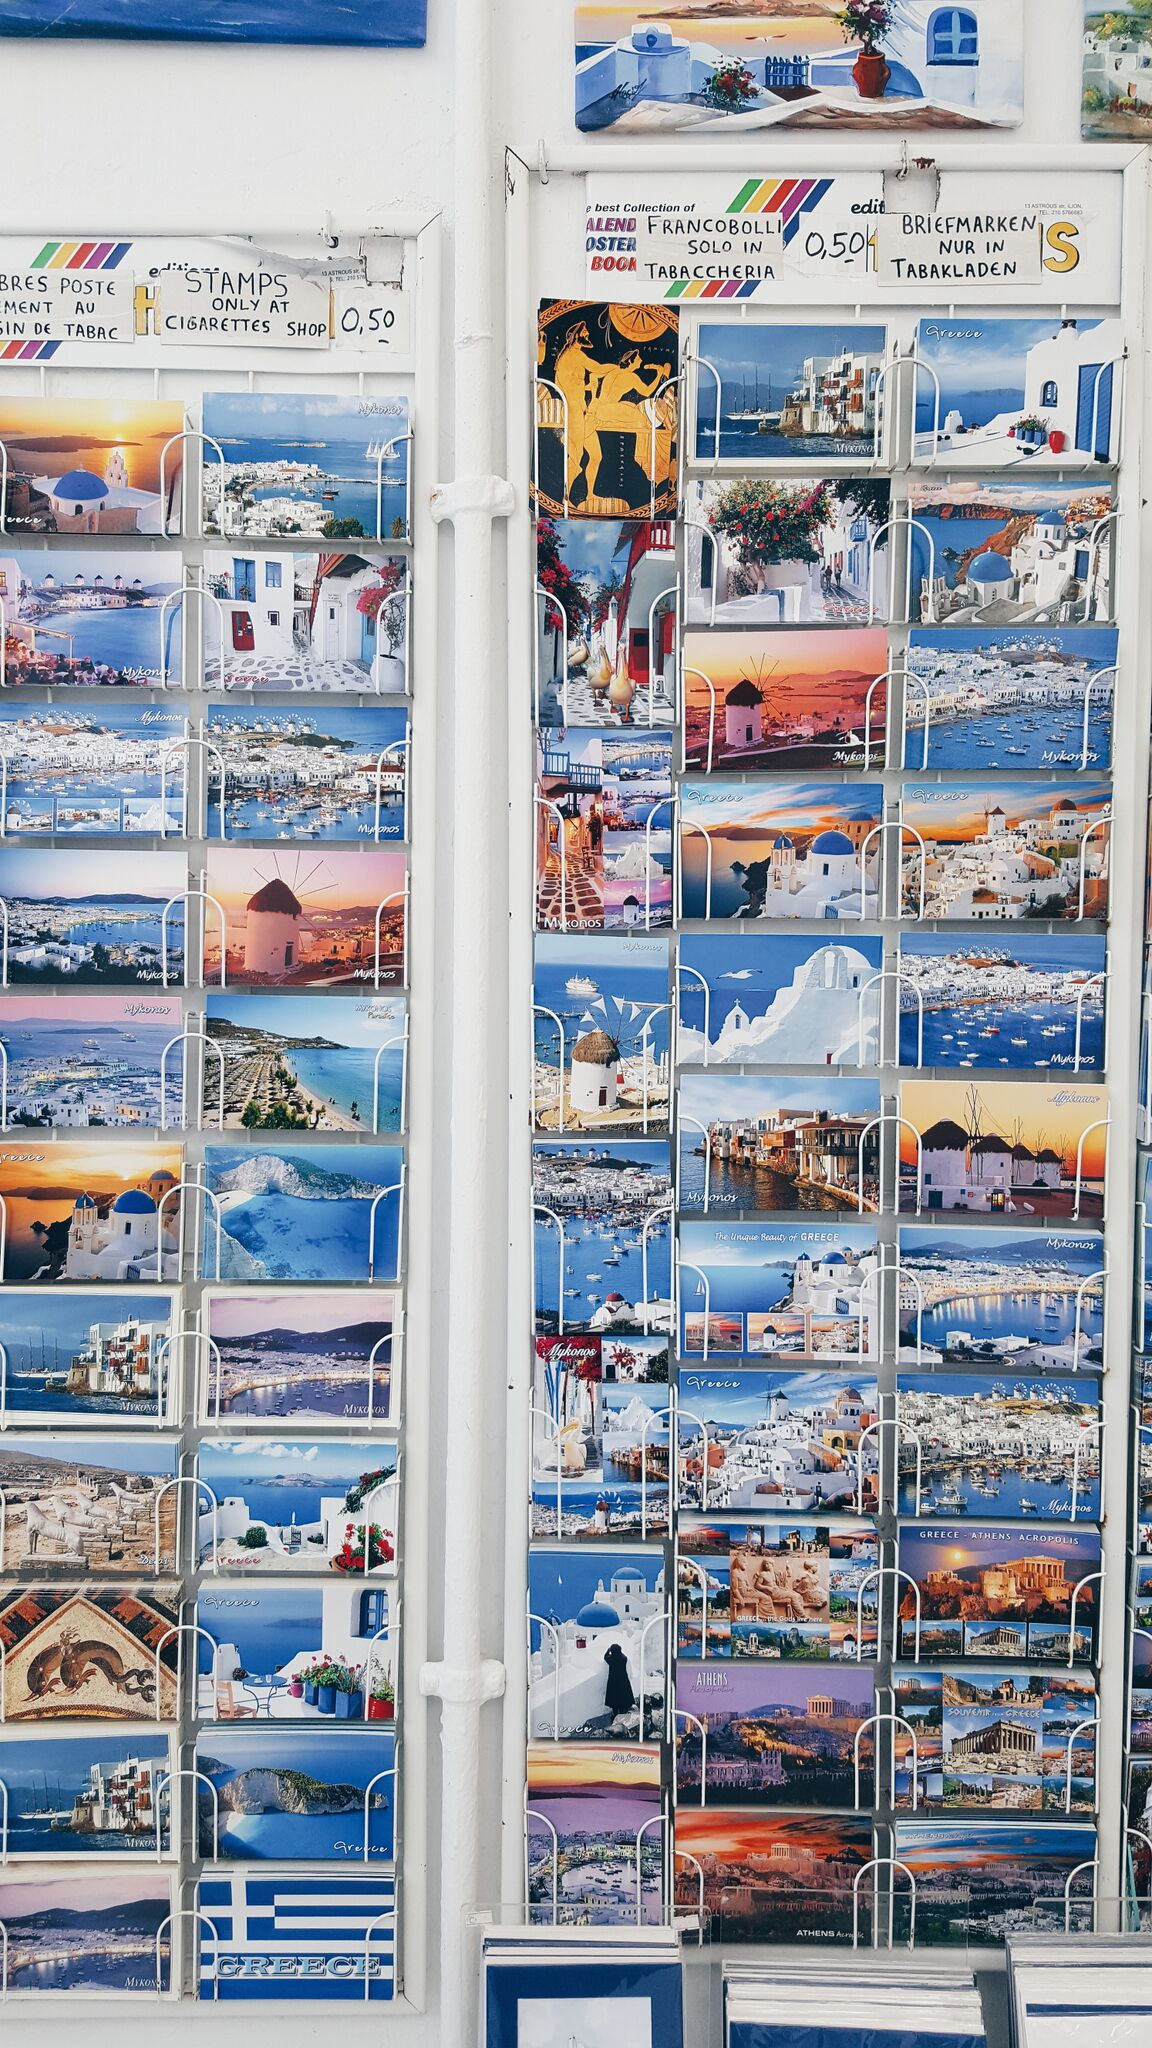 Postcards from Mykonos